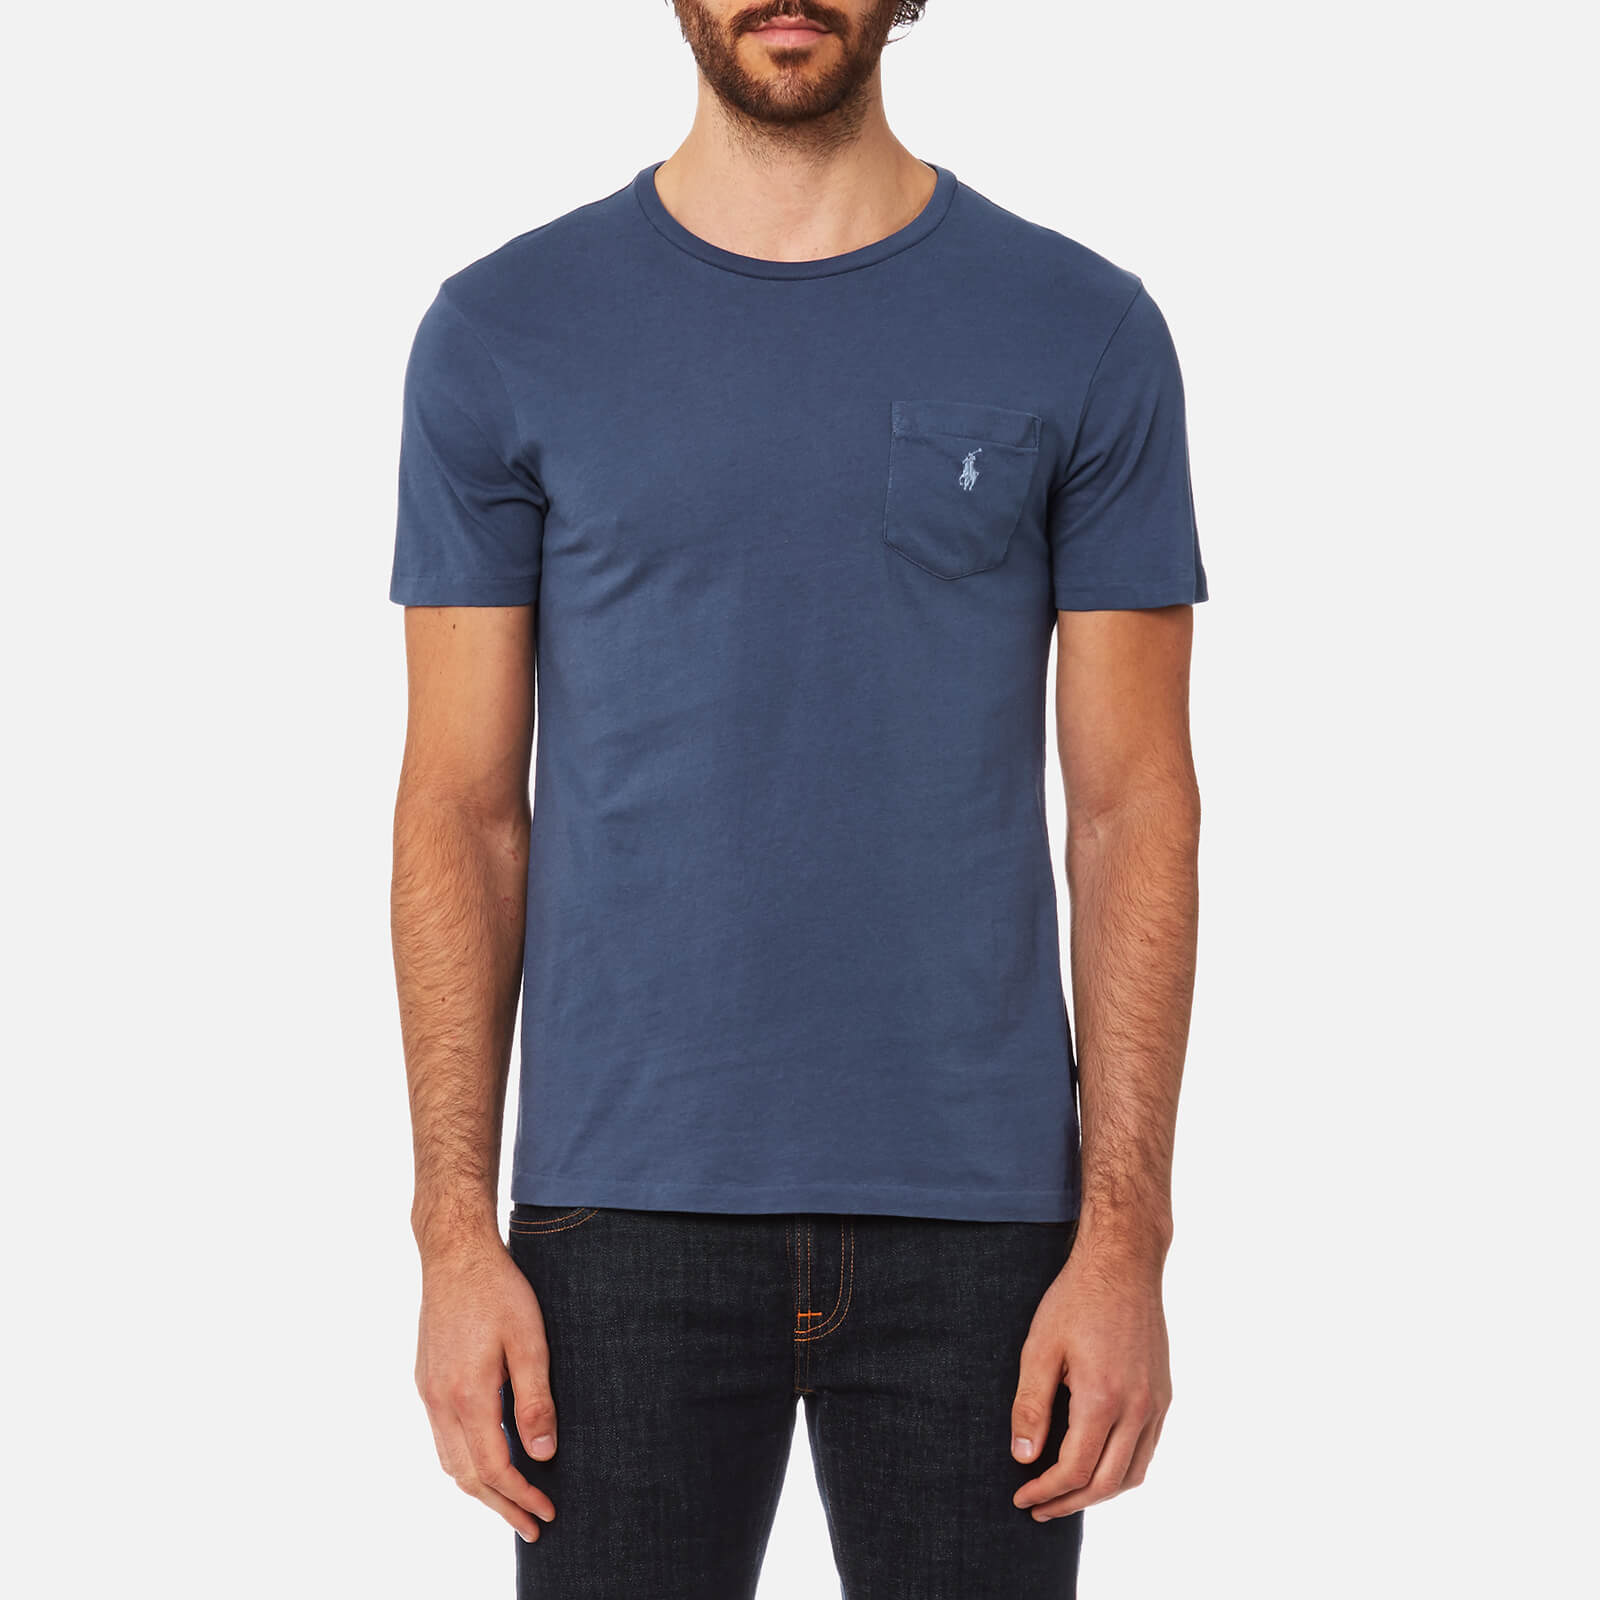 b82b6aa13daa80 Polo Ralph Lauren Men's Pocket T-Shirt - Light Navy - Free UK Delivery over  £50